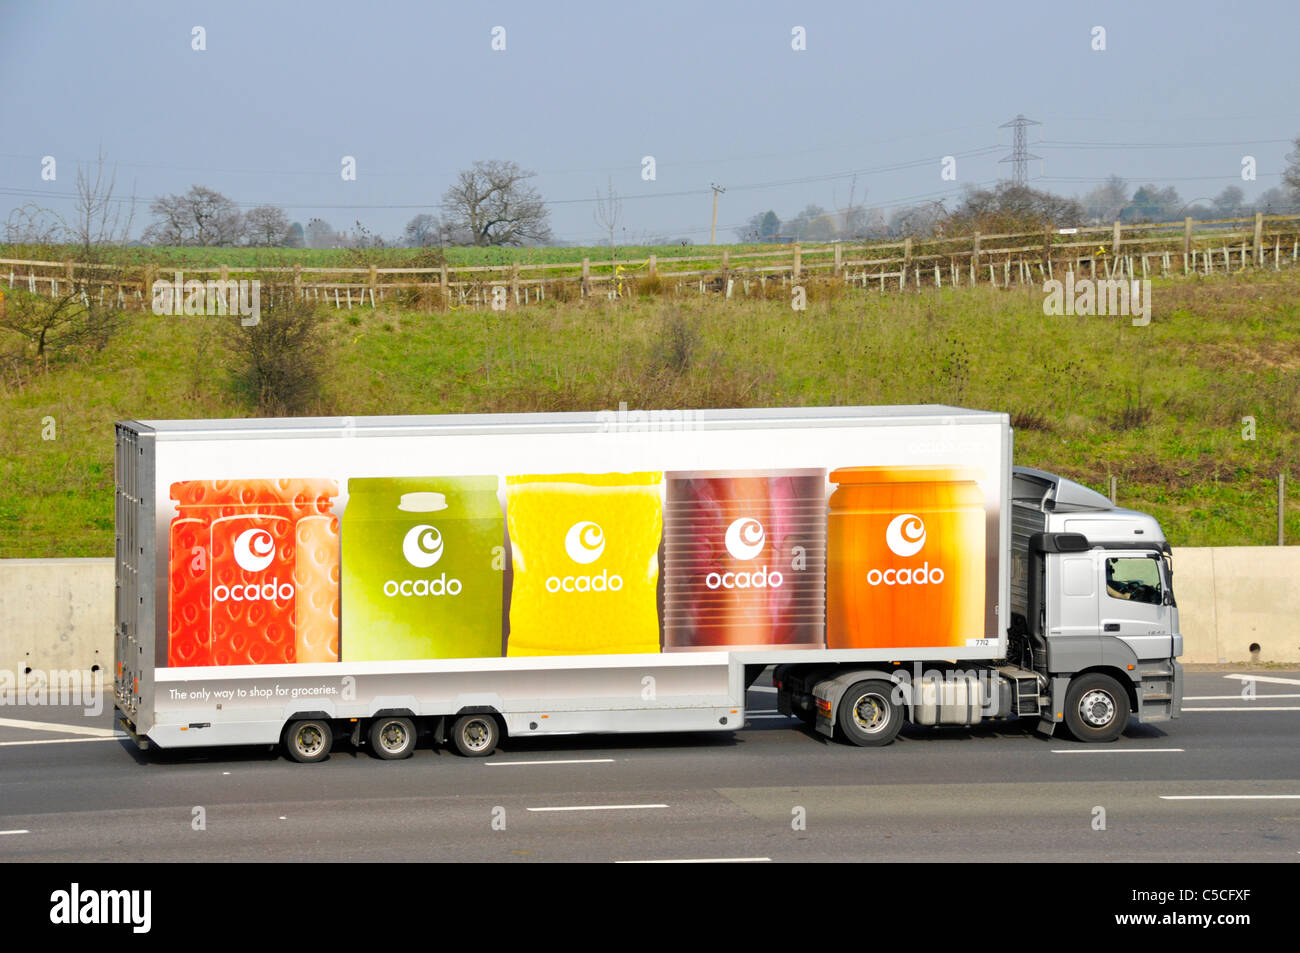 Ocado online internet shopping food grocery supply chain business side view hgv delivery lorry truck & articulated - Stock Image